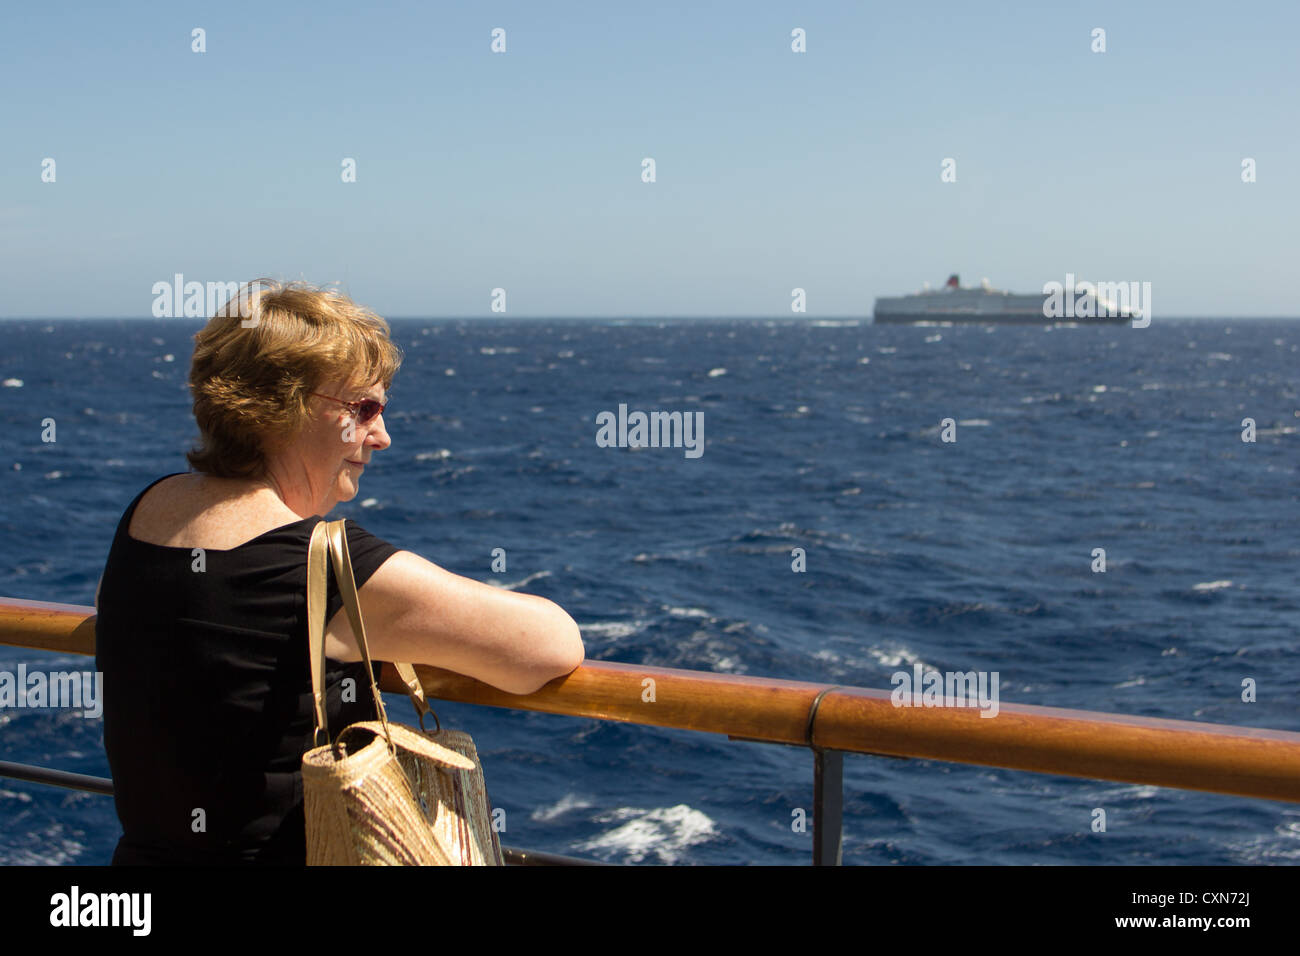 woman enjoying seaview from the rails of the Cunard liner 'Queen Victoria' looking across at sister ship - Stock Image